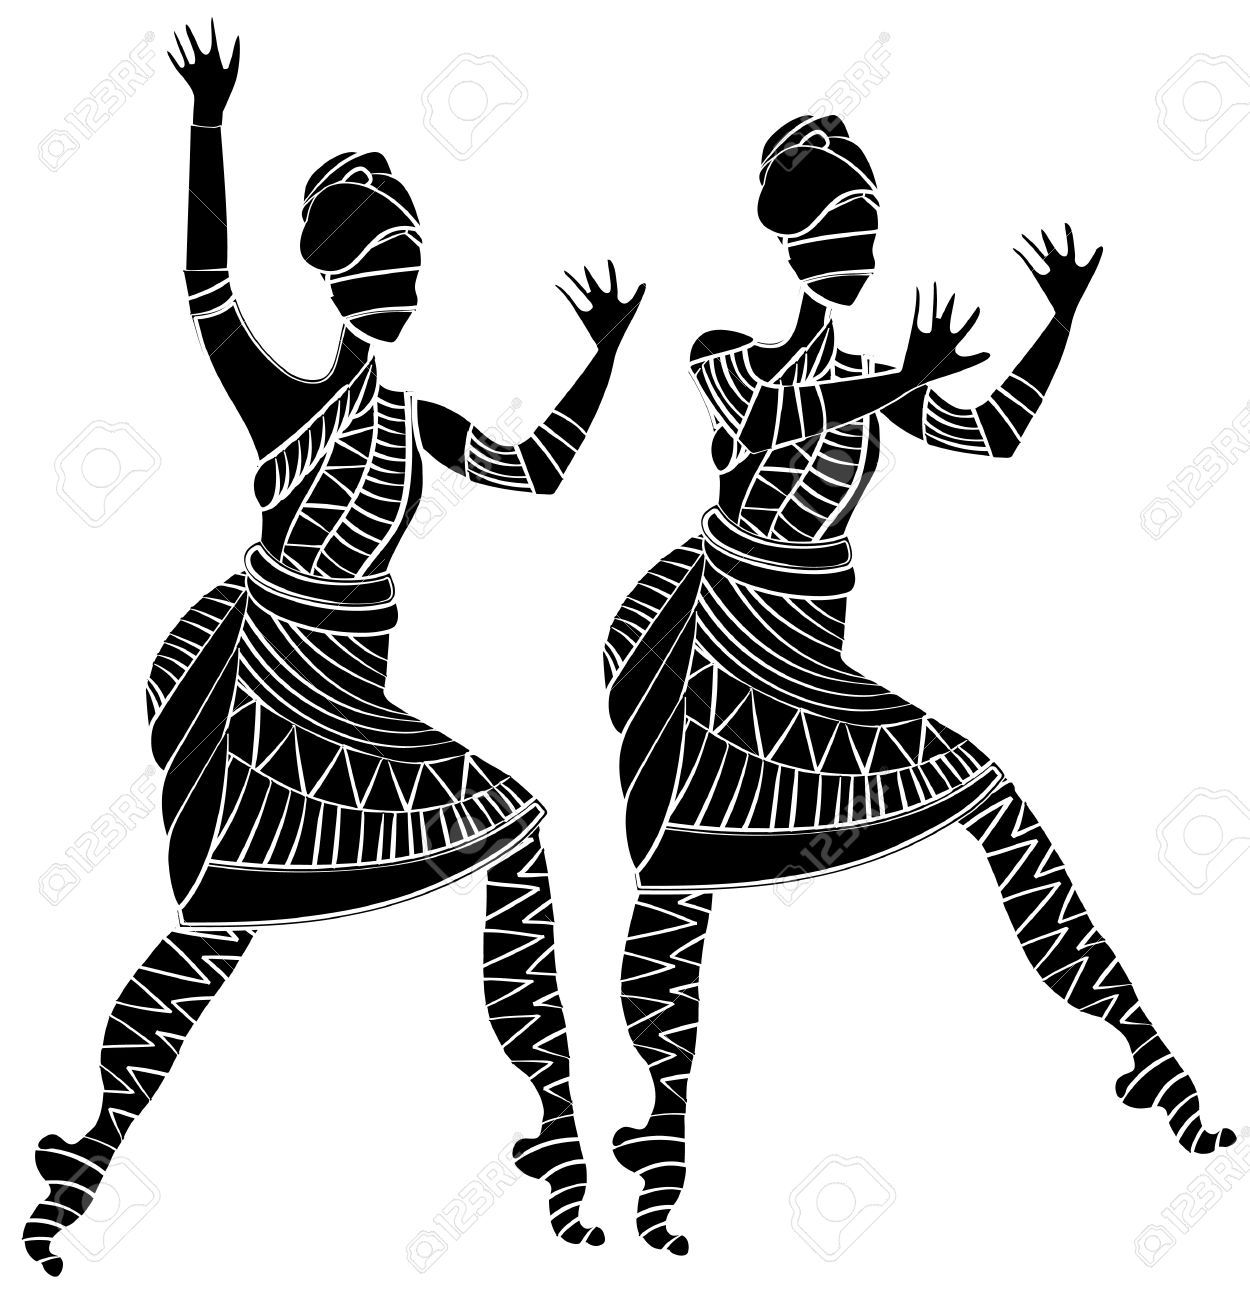 Religion cliparts stock vector. African clipart dancer african